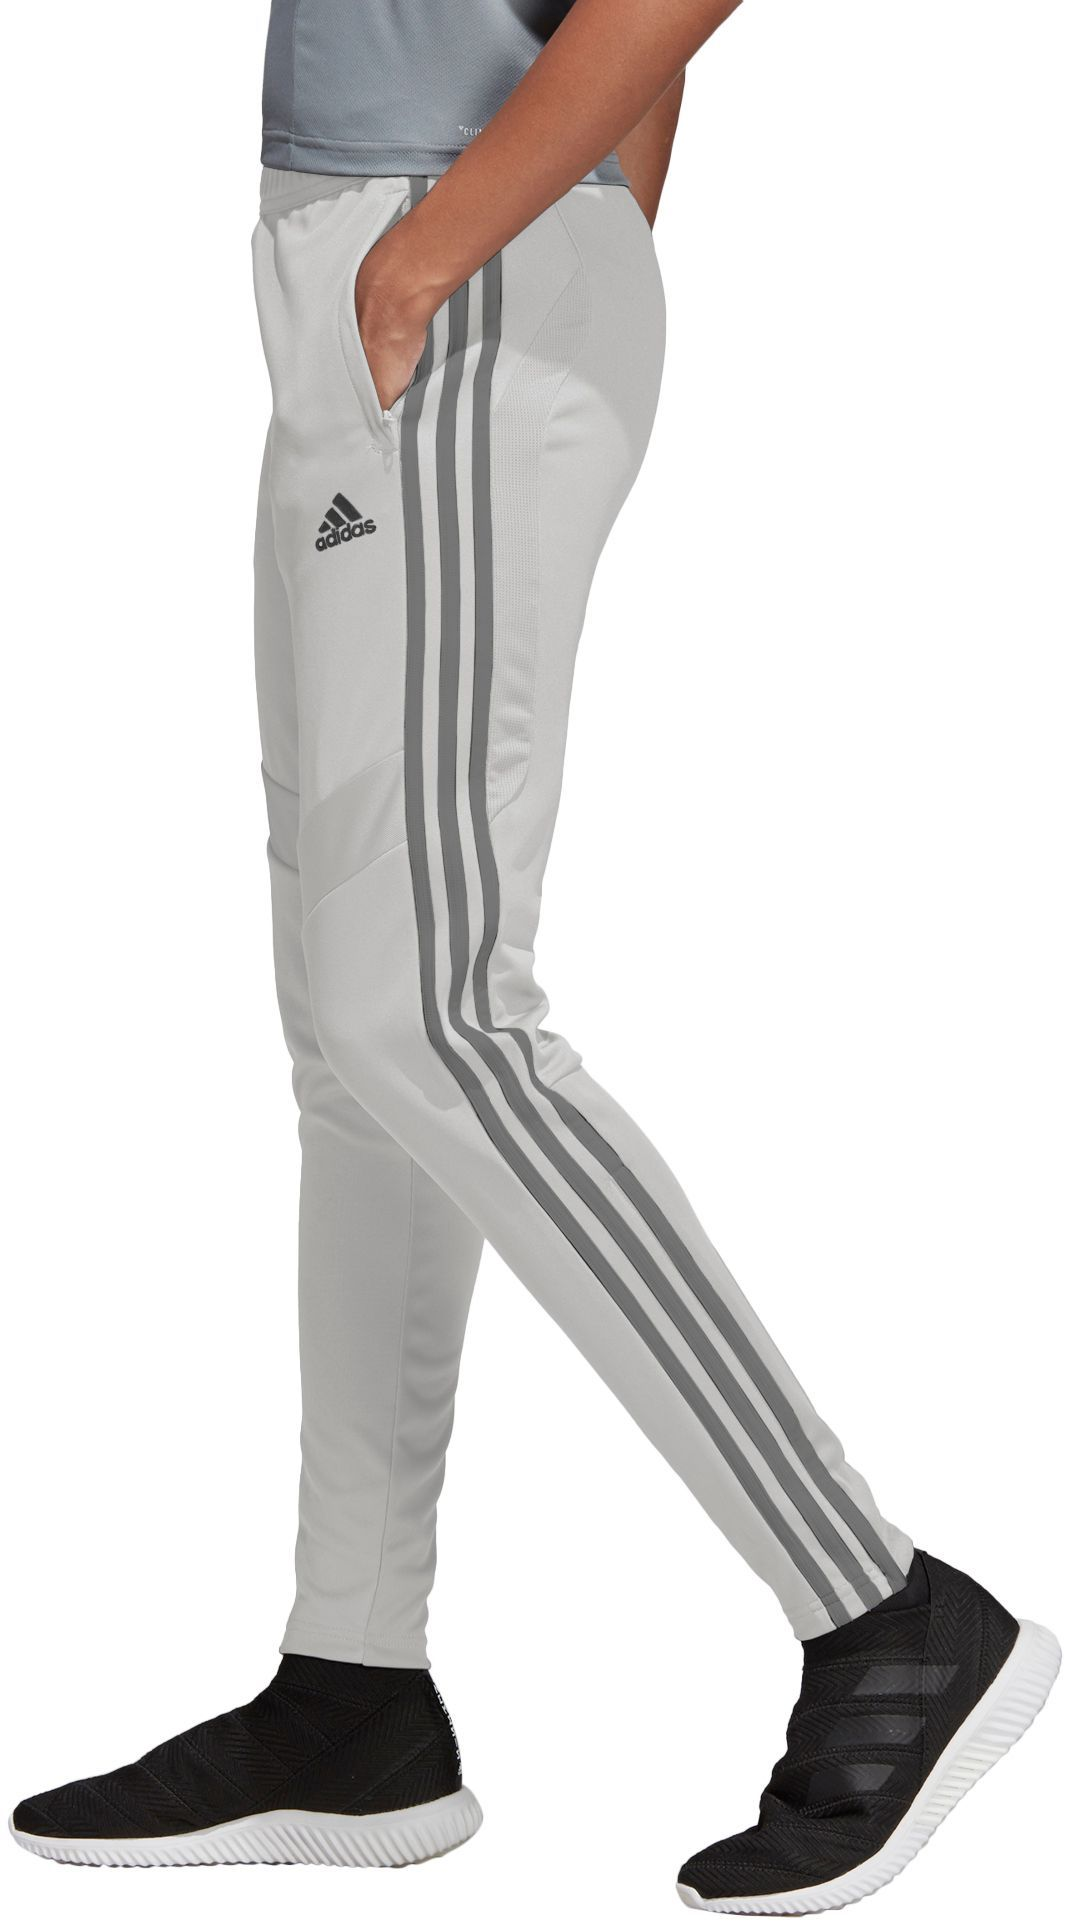 Adidas Tiro 19 Training Pants in 2019 | Pants outfit